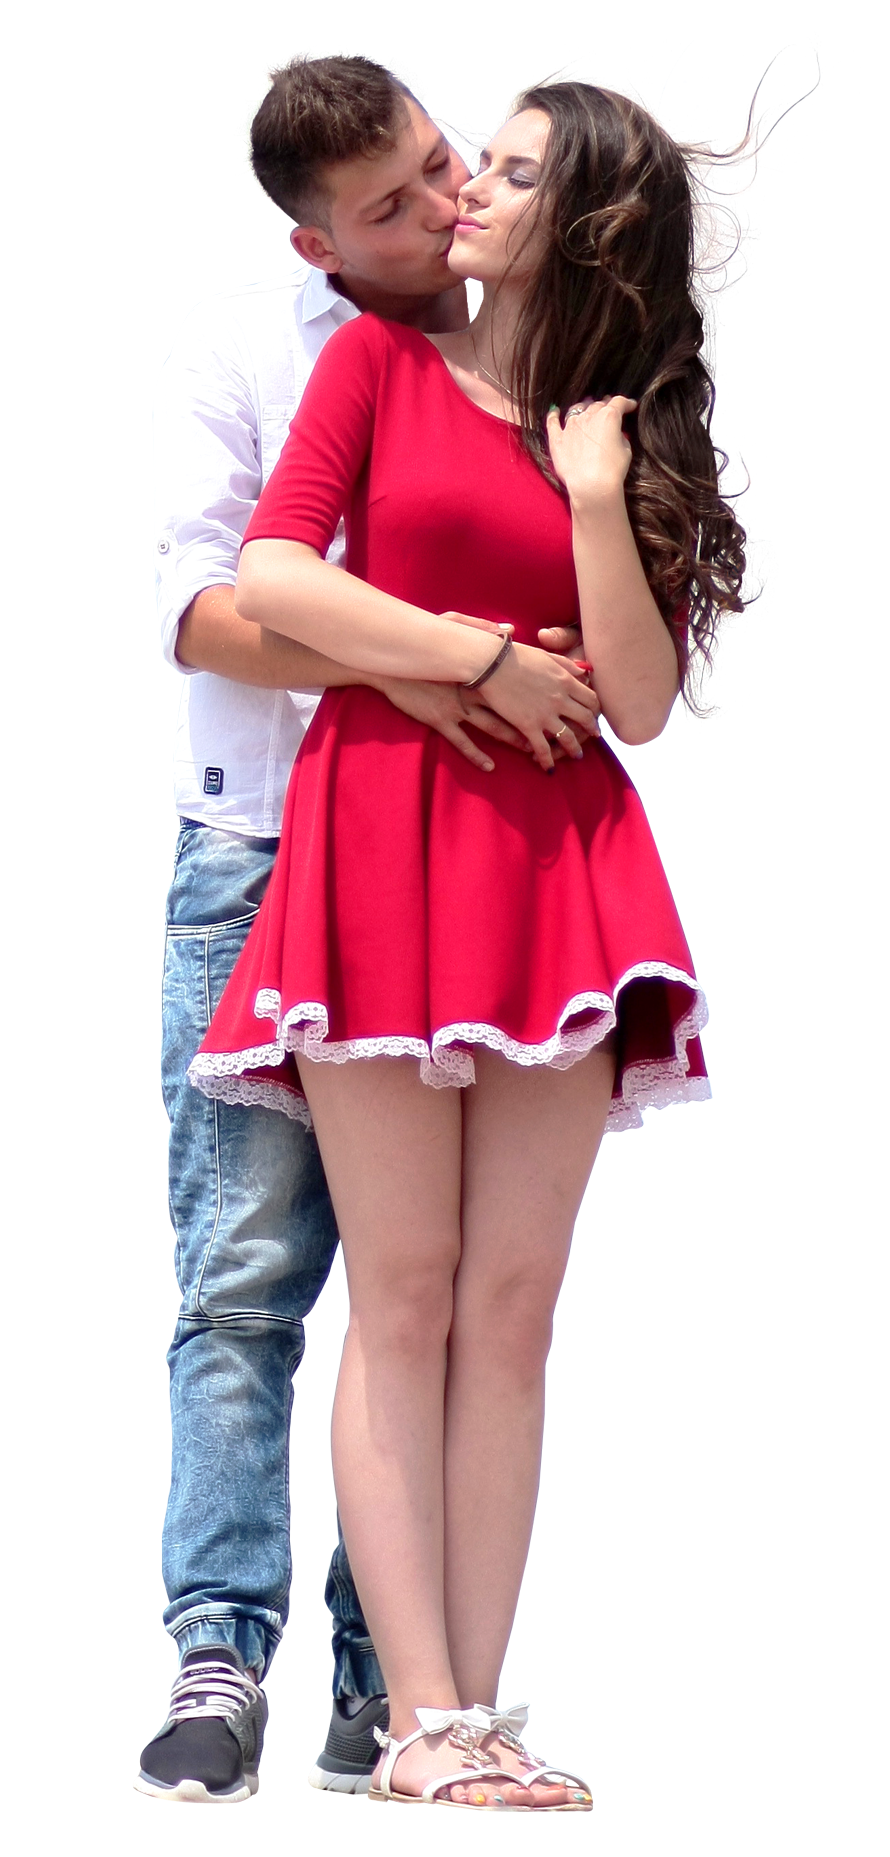 Couple PNG Transparent Image